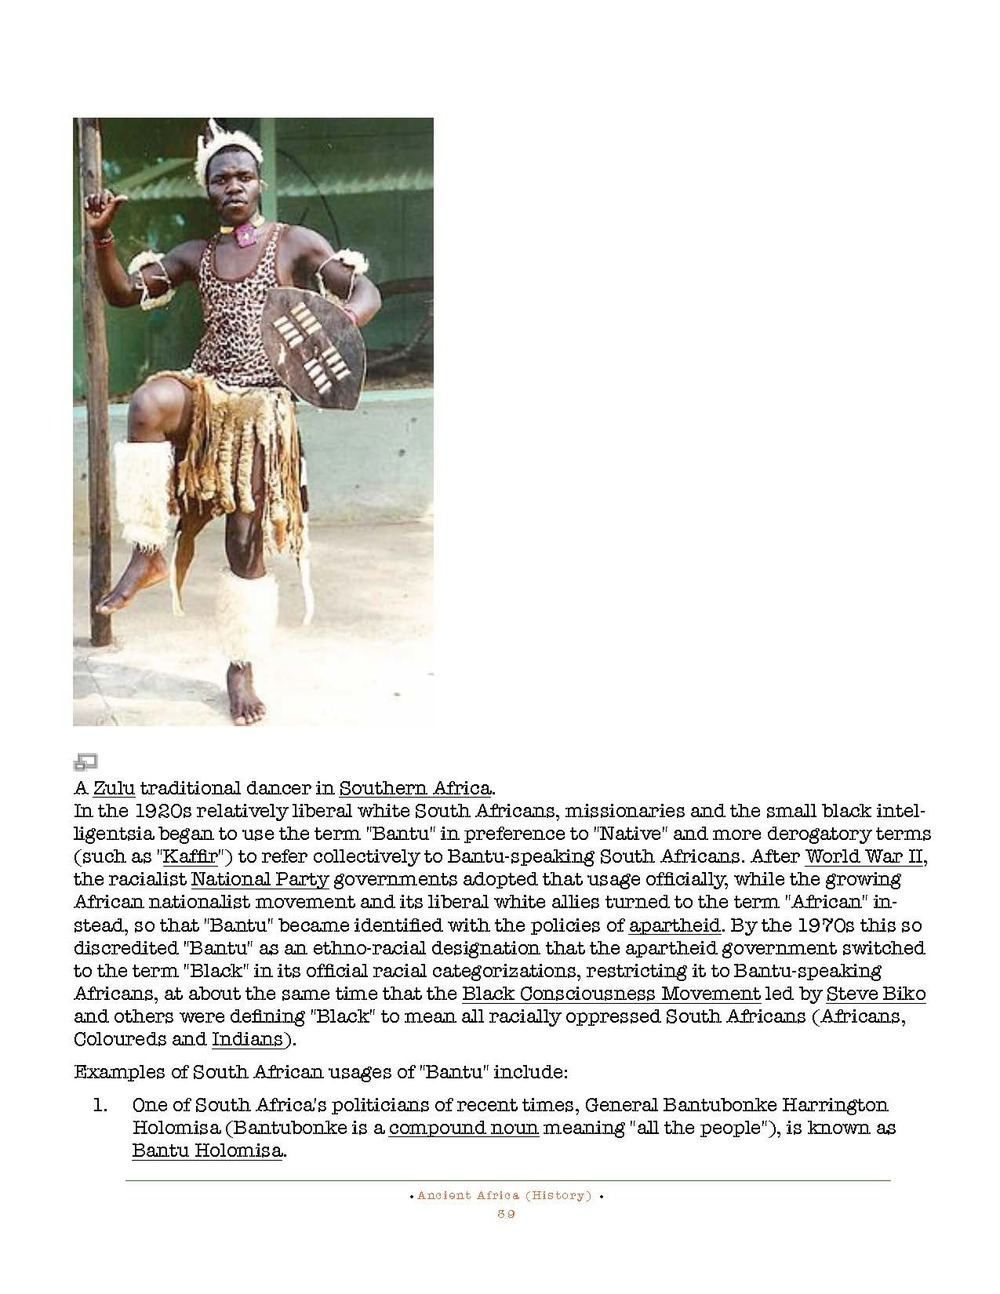 HOCE- Ancient Africa Notes_Page_039.jpg